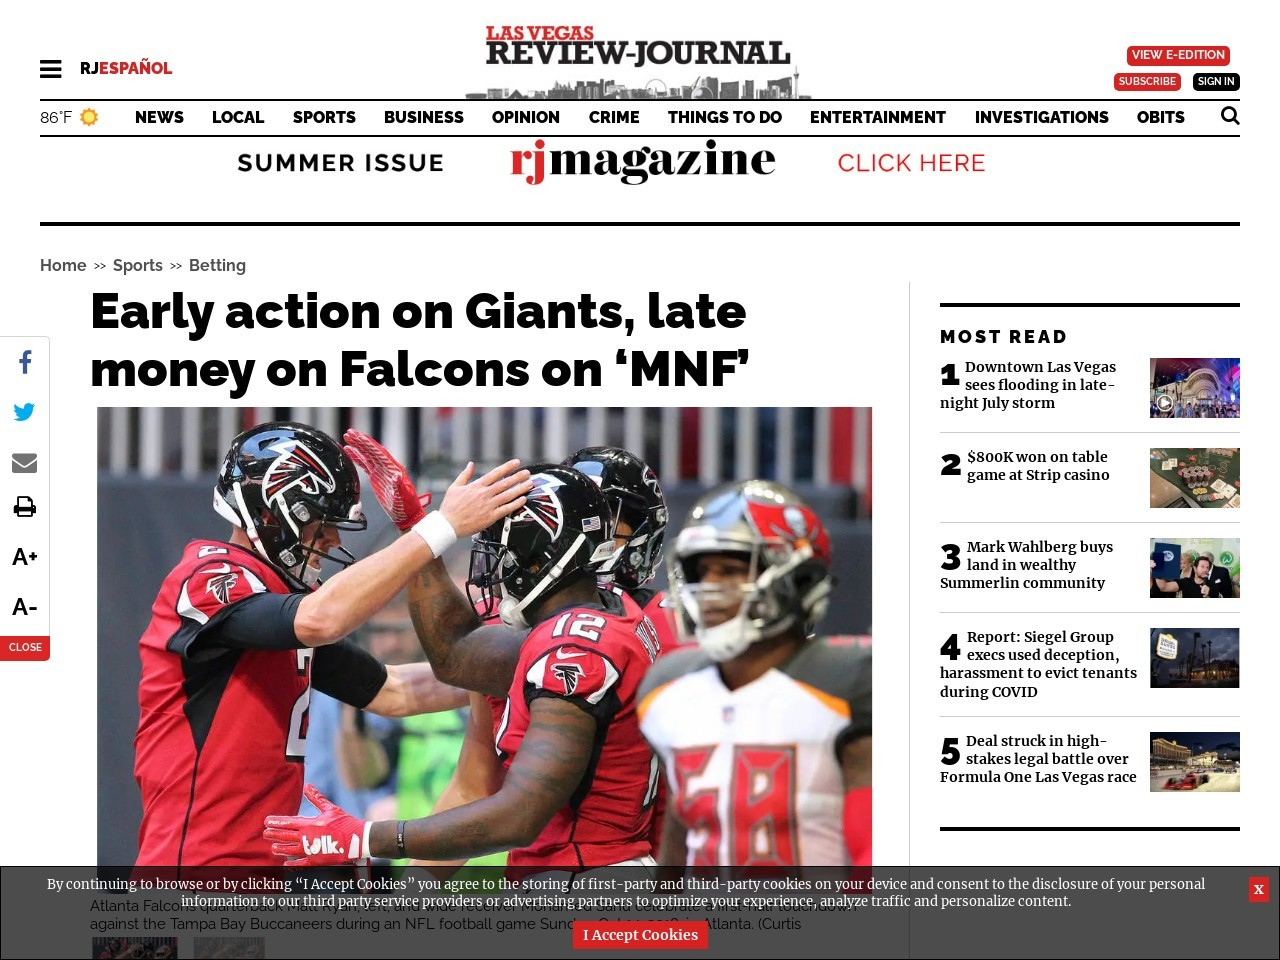 Early action on Giants, late money on Falcons on 'MNF'